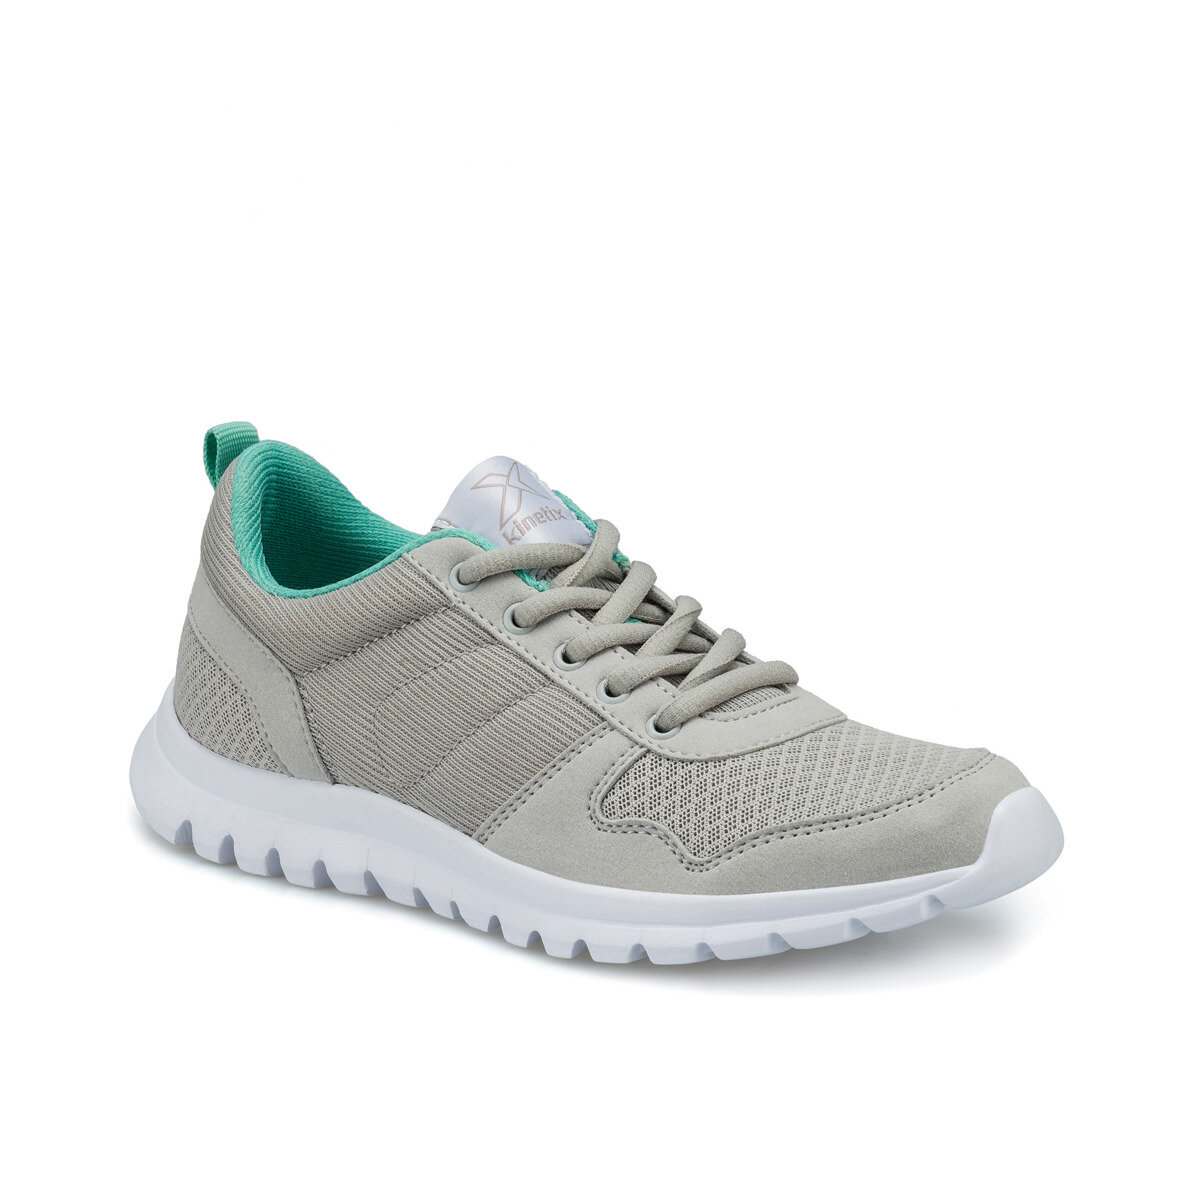 FLO BALERA Gray Women 'S Running Shoe KINETIX